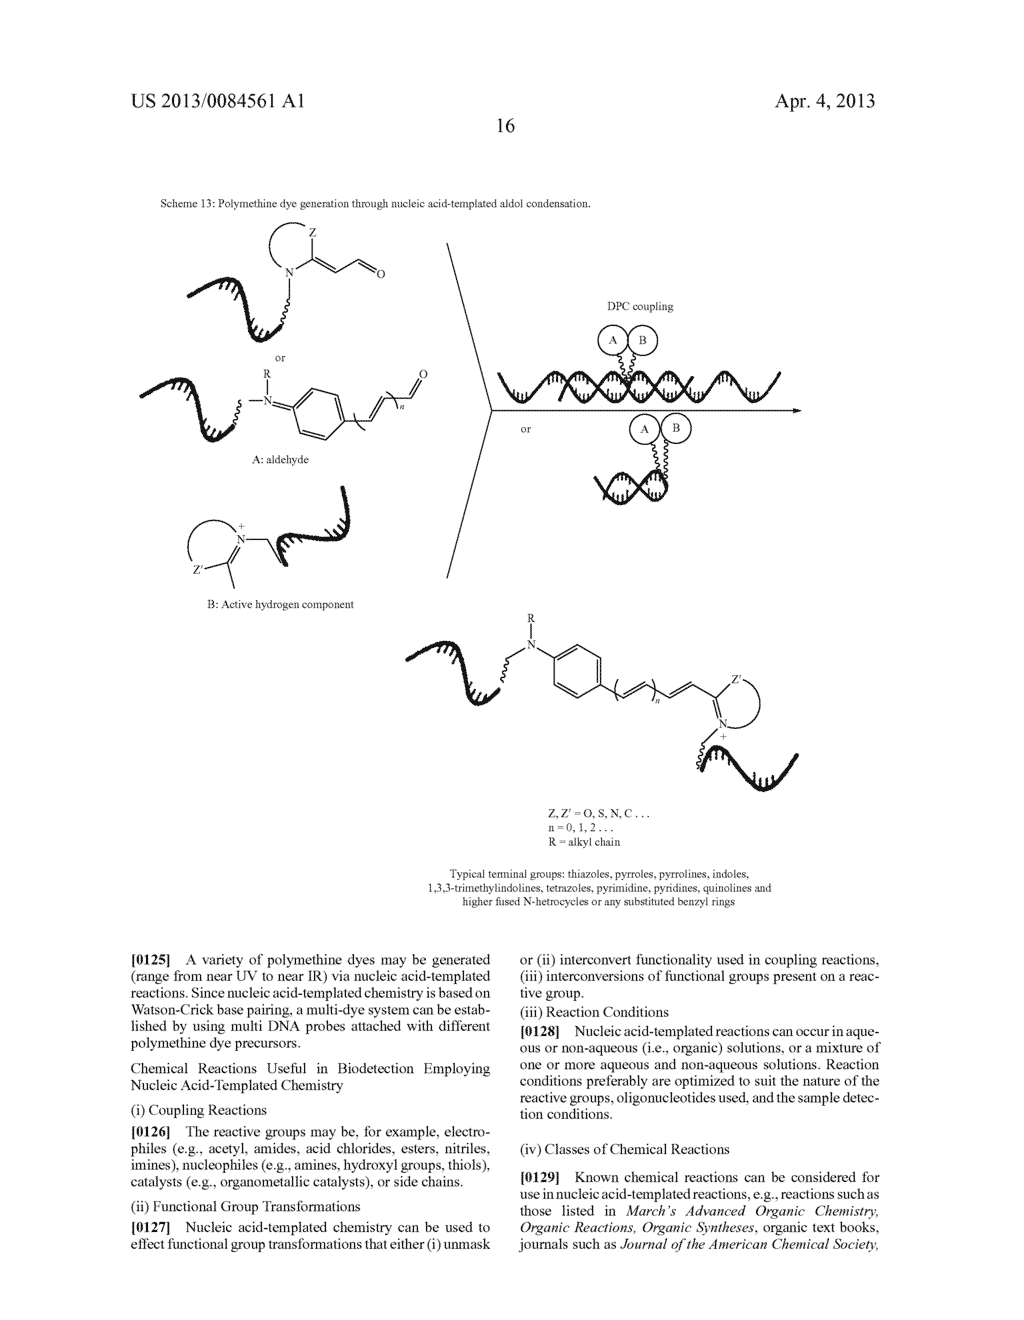 BIODETECTION BY NUCLEIC ACID-TEMPLATED CHEMISTRY - diagram, schematic, and image 55